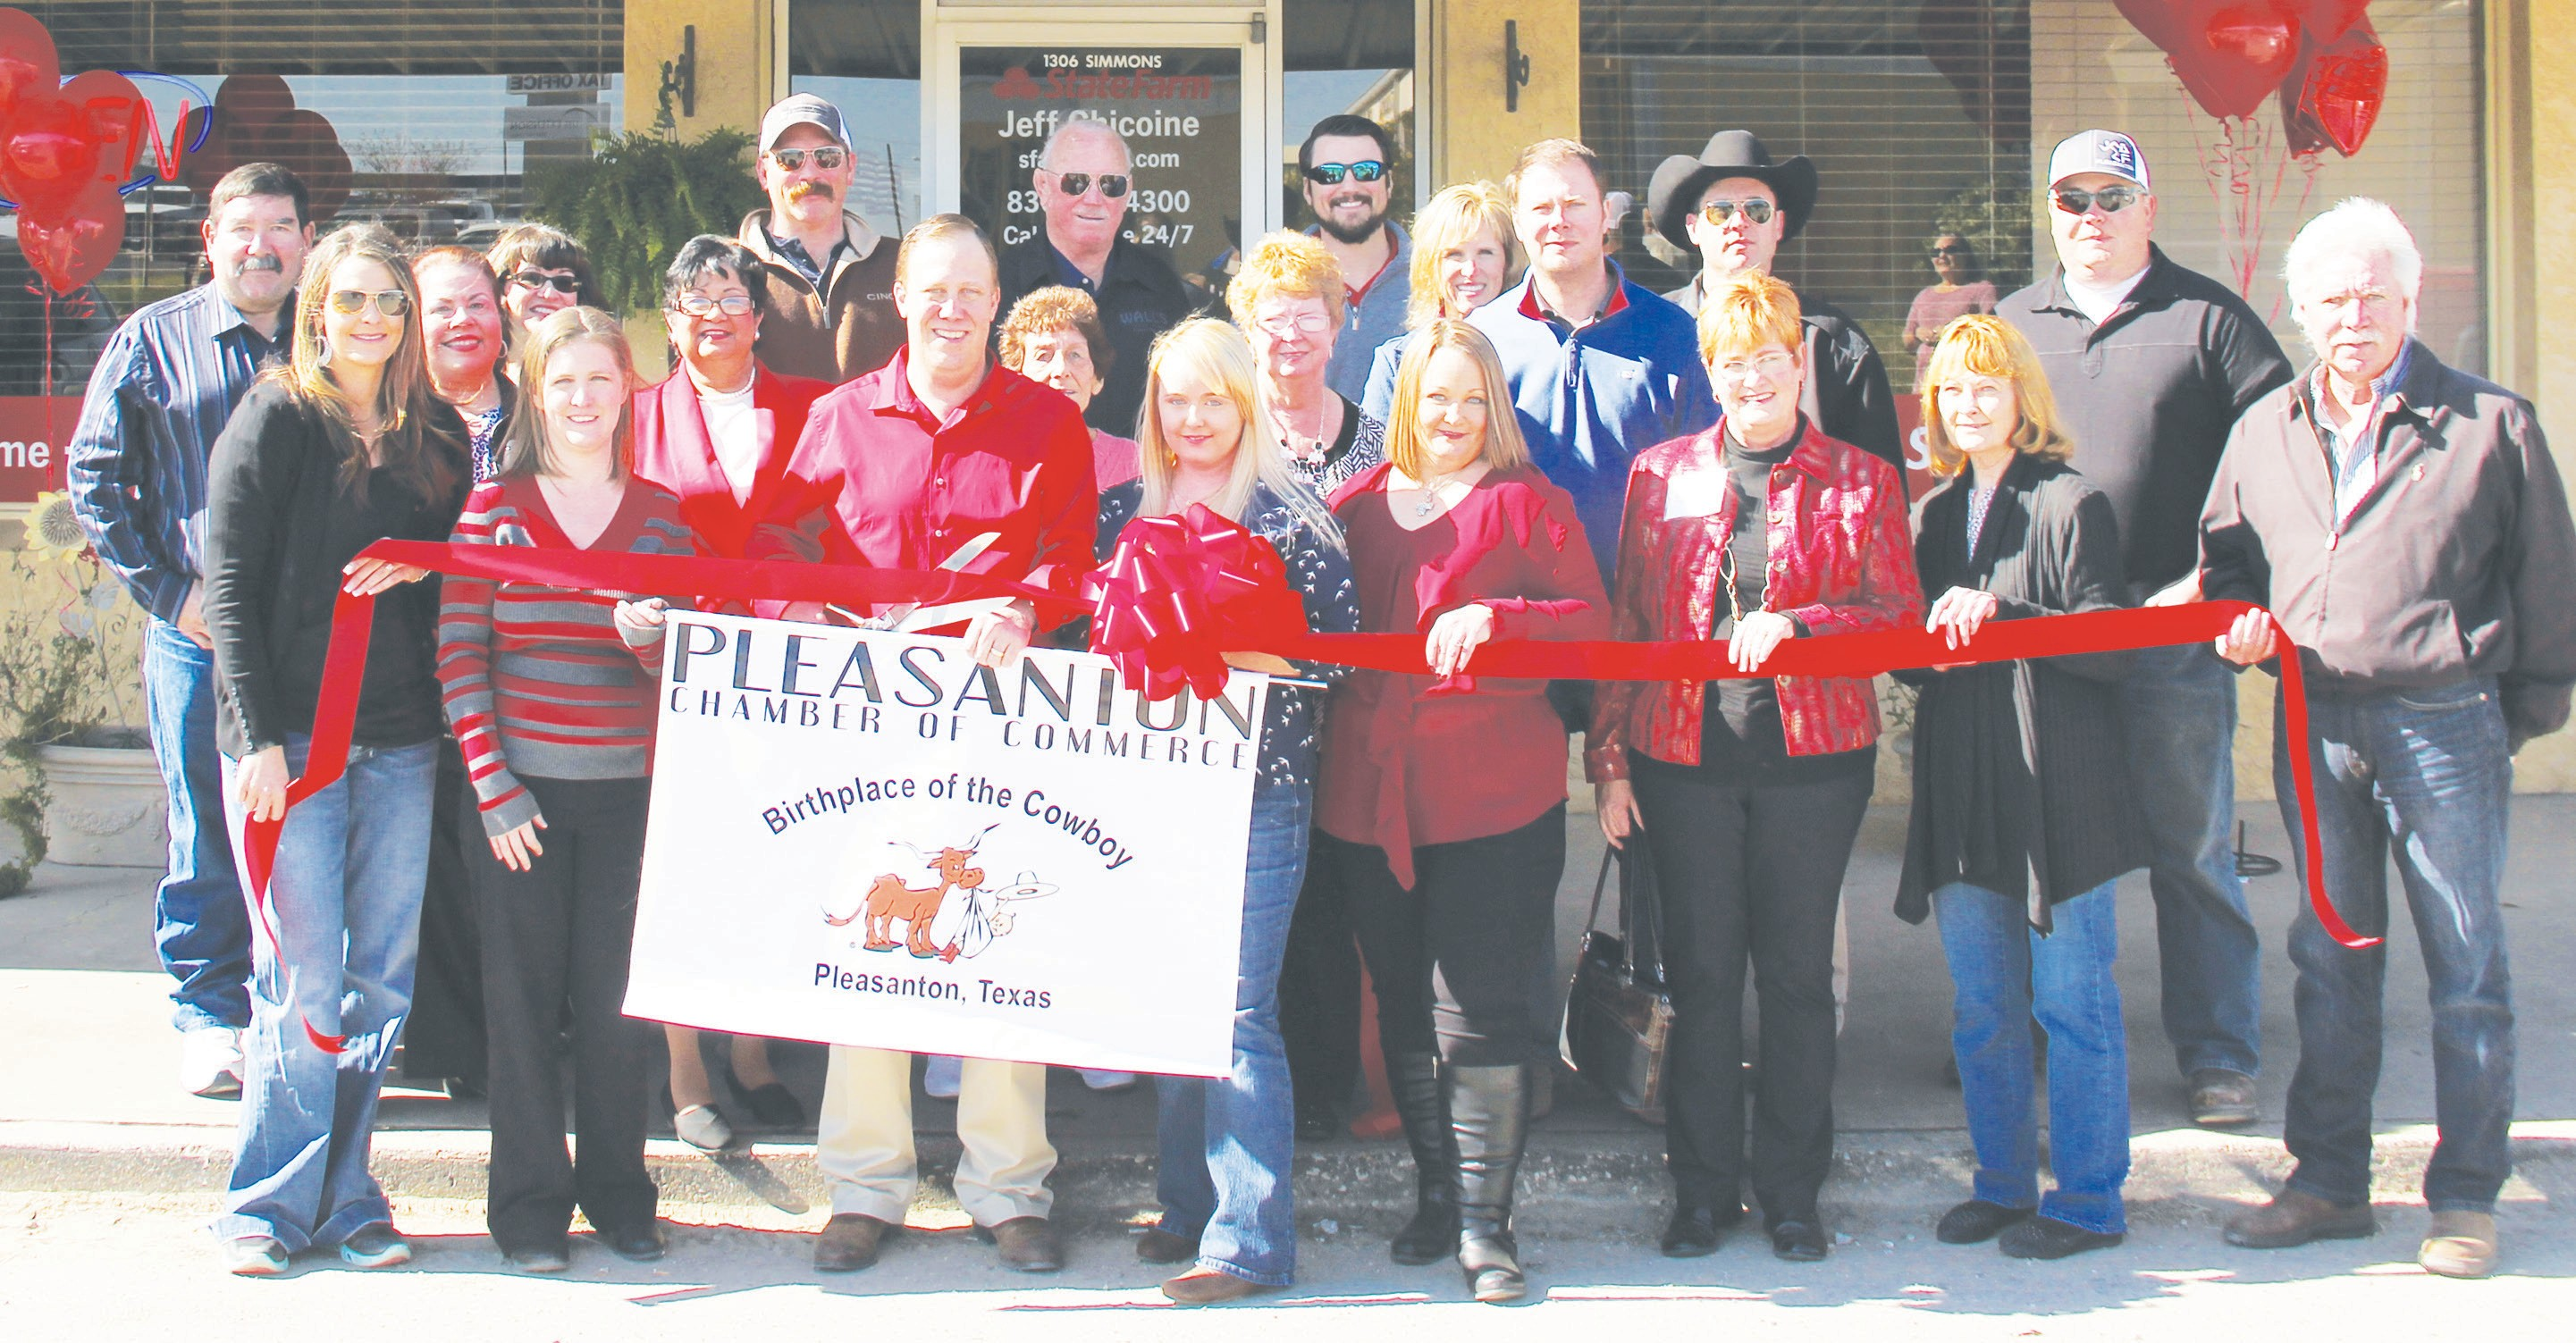 Pleasanton Chamber of Commerce members, other community leaders and family members joined Jeff Chicoine at the ribbon cutting for the State Farm in Jourdanton on Friday, February 5. Pictured at the ribbon cutting: Joseph Guerra, Jessica Wier, Cindy Urrabazo, Kathleen Guerra, Shanna Luby, Dee Corella-Ryle, Gaylan Andrews, Jeff Chicoine, Agent, Mary Guerra, Wilbur Palmer, Jessica Pickett, Joyce Price, Kevin Aniol, Ami Powell, Shannon Chicoine (Jeff's wife), David Price, Clint Powell, Kameron Chicoine, Iris Miller, James Strange and Brad Mumm.